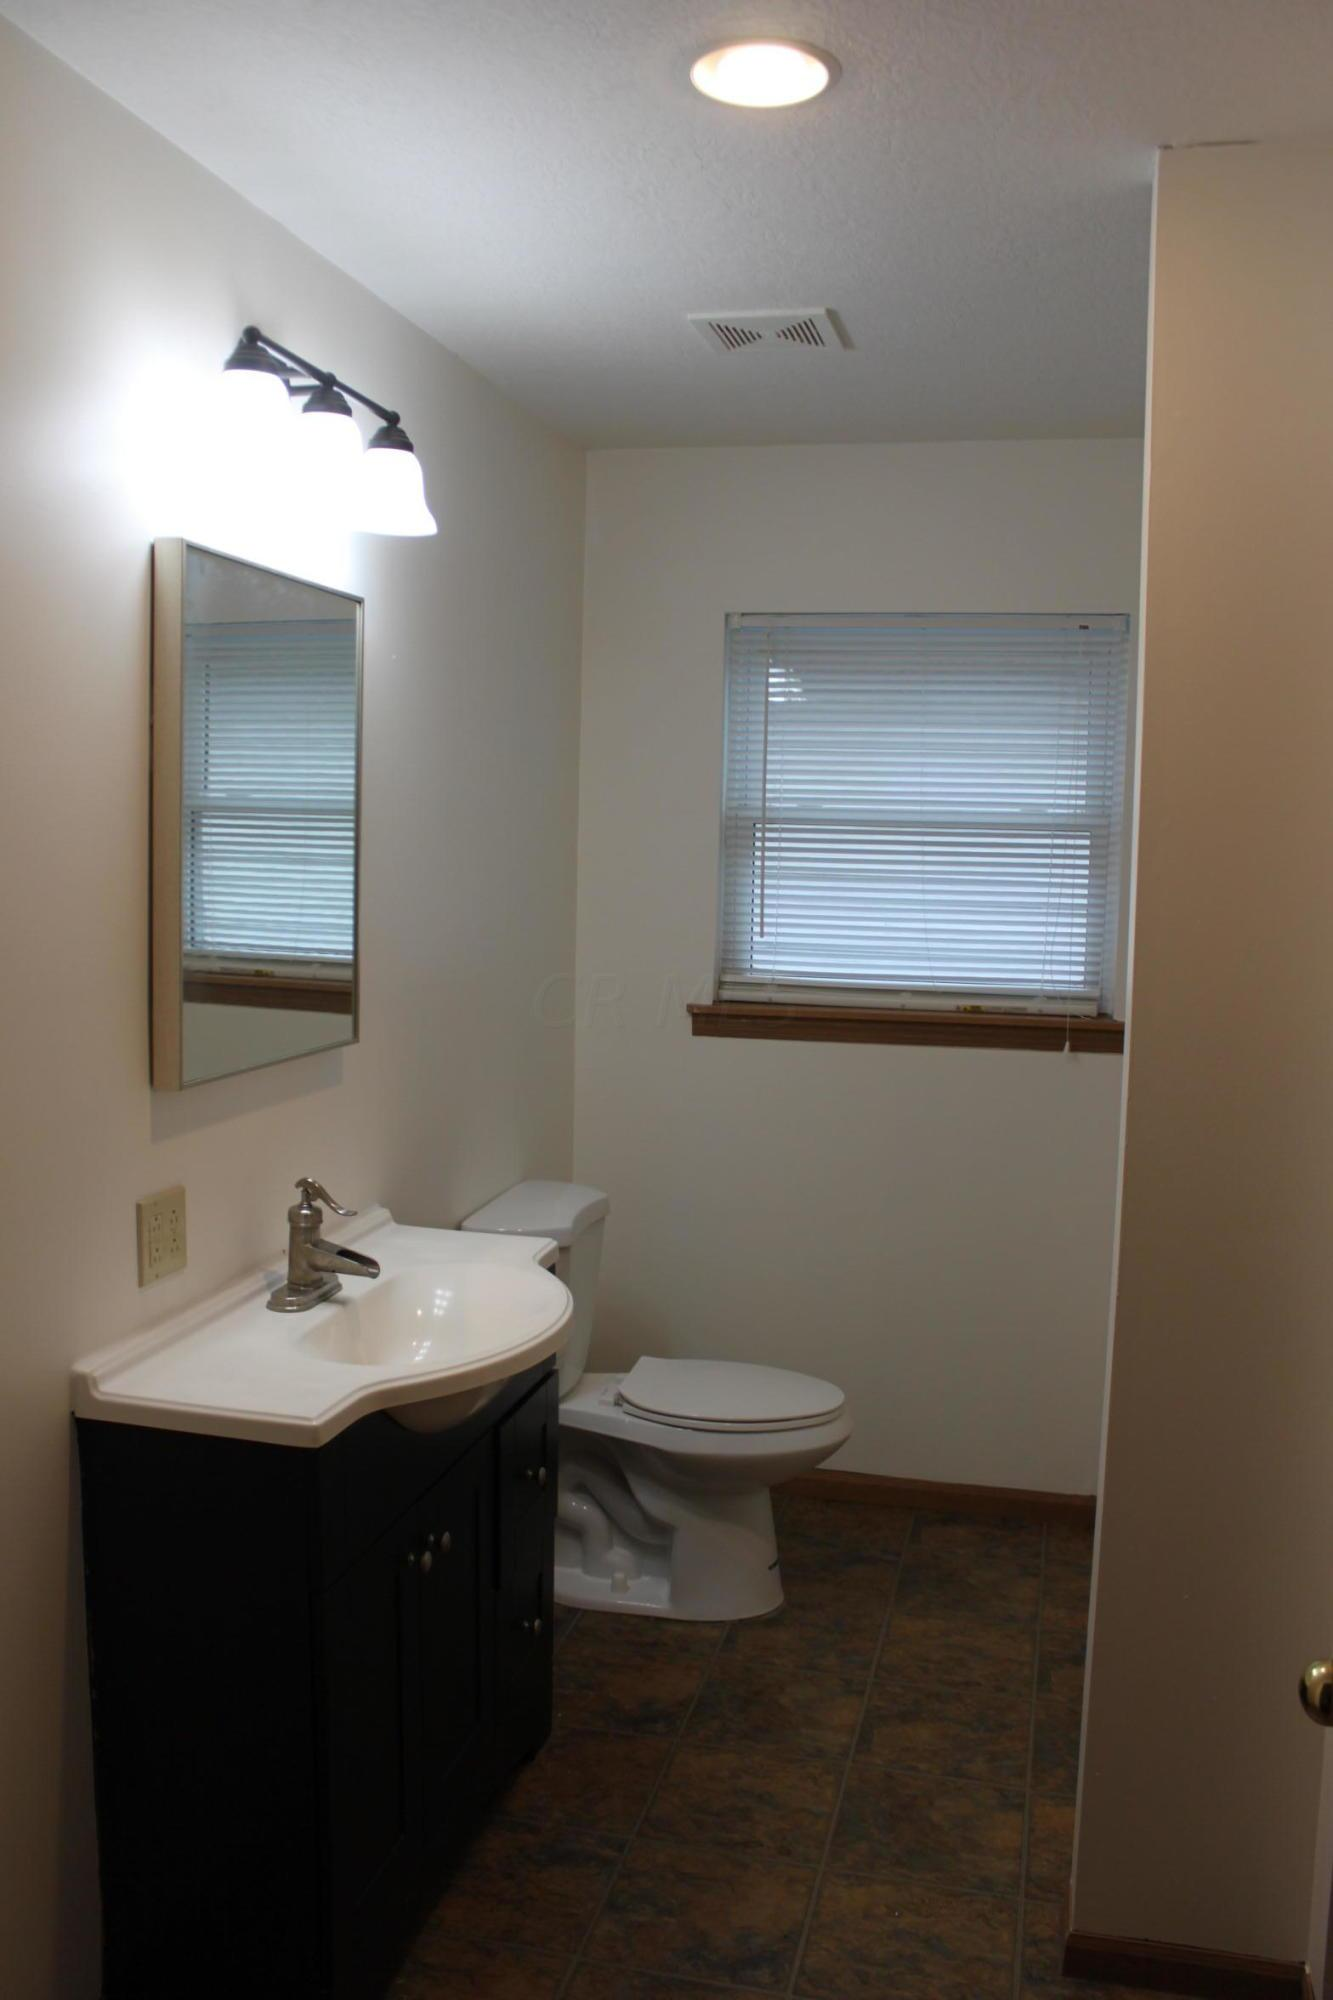 905 Lakeview Avenue, Washington Court House, Ohio 43160, 3 Bedrooms Bedrooms, ,2 BathroomsBathrooms,Residential,For Sale,Lakeview,221001138